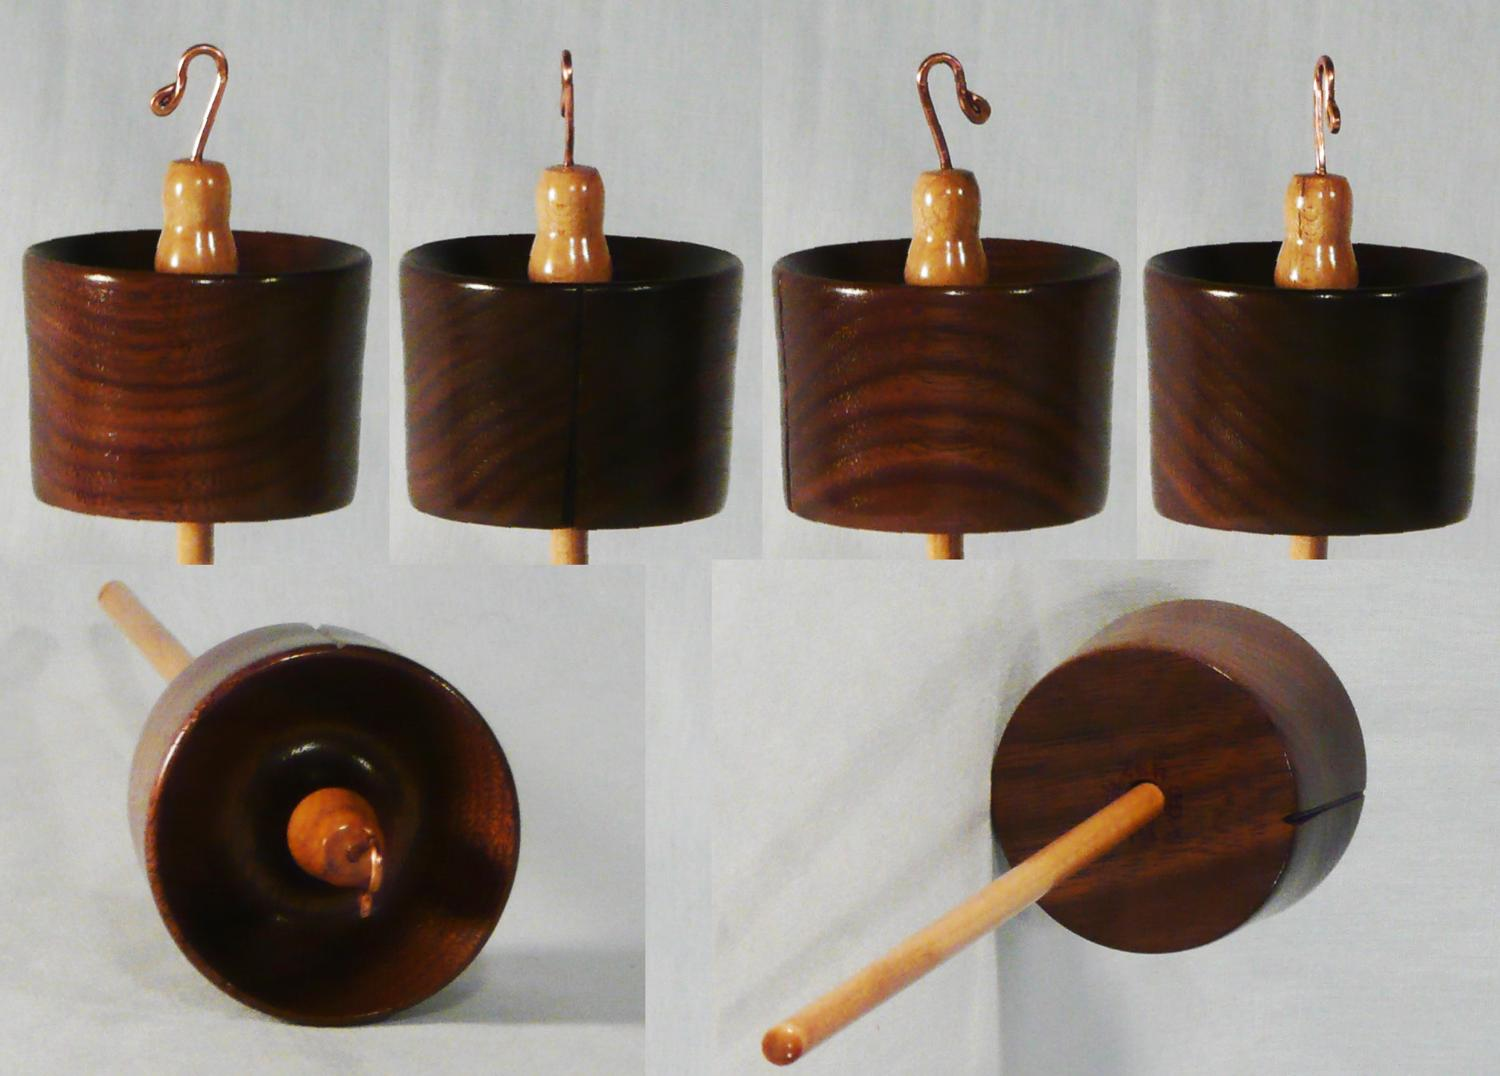 Hand turned high whorl drop spindle by Cynthia D. Haney of Walnut on Maple.